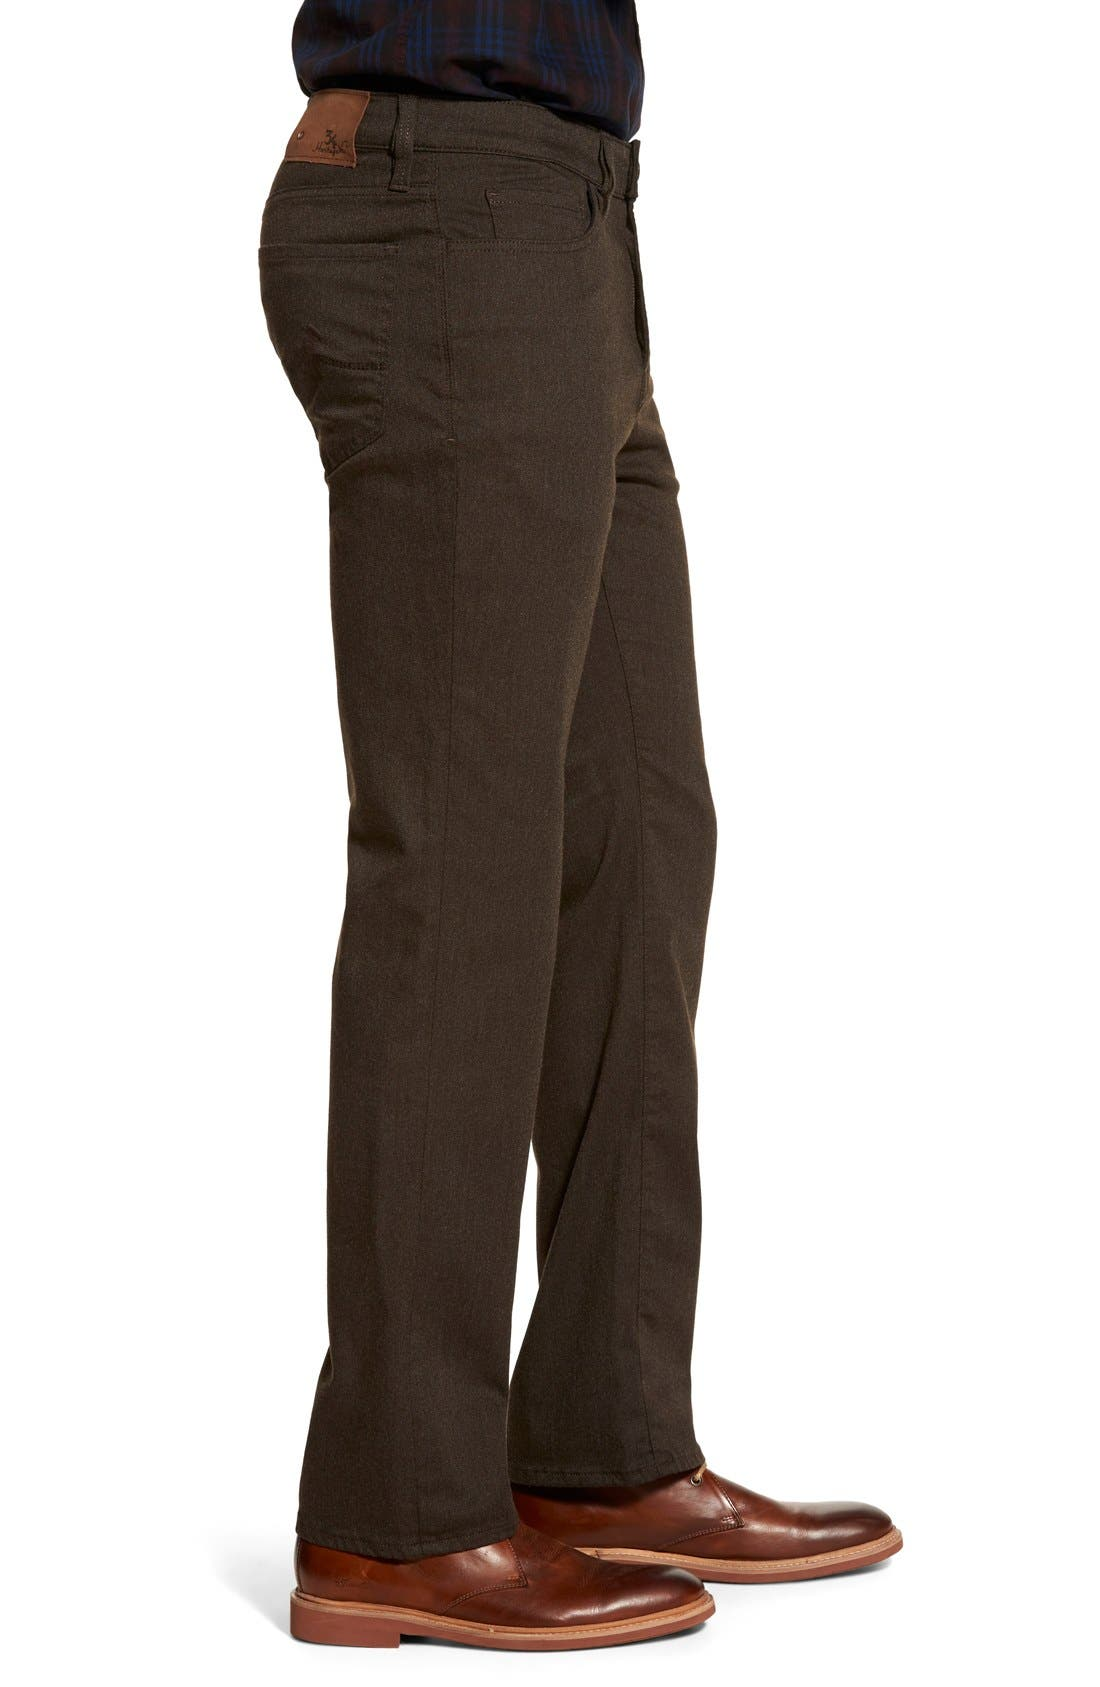 'Charisma' Relaxed Fit Jeans,                             Alternate thumbnail 3, color,                             200